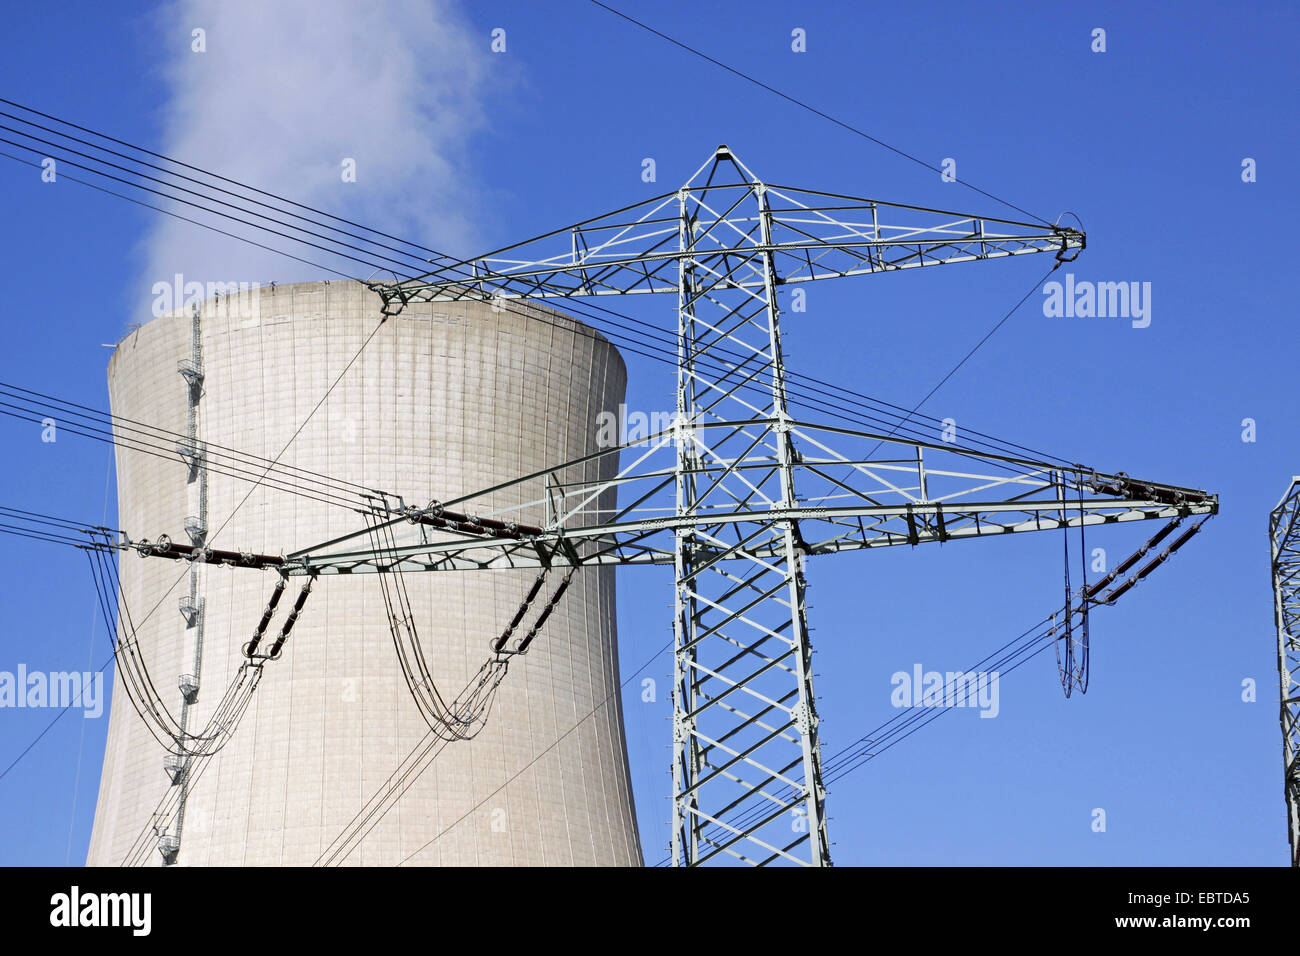 power pole in front of two looming cooling towers of the nuclear power plant Grohnde, Germany, Lower Saxony, Grohnde - Stock Image